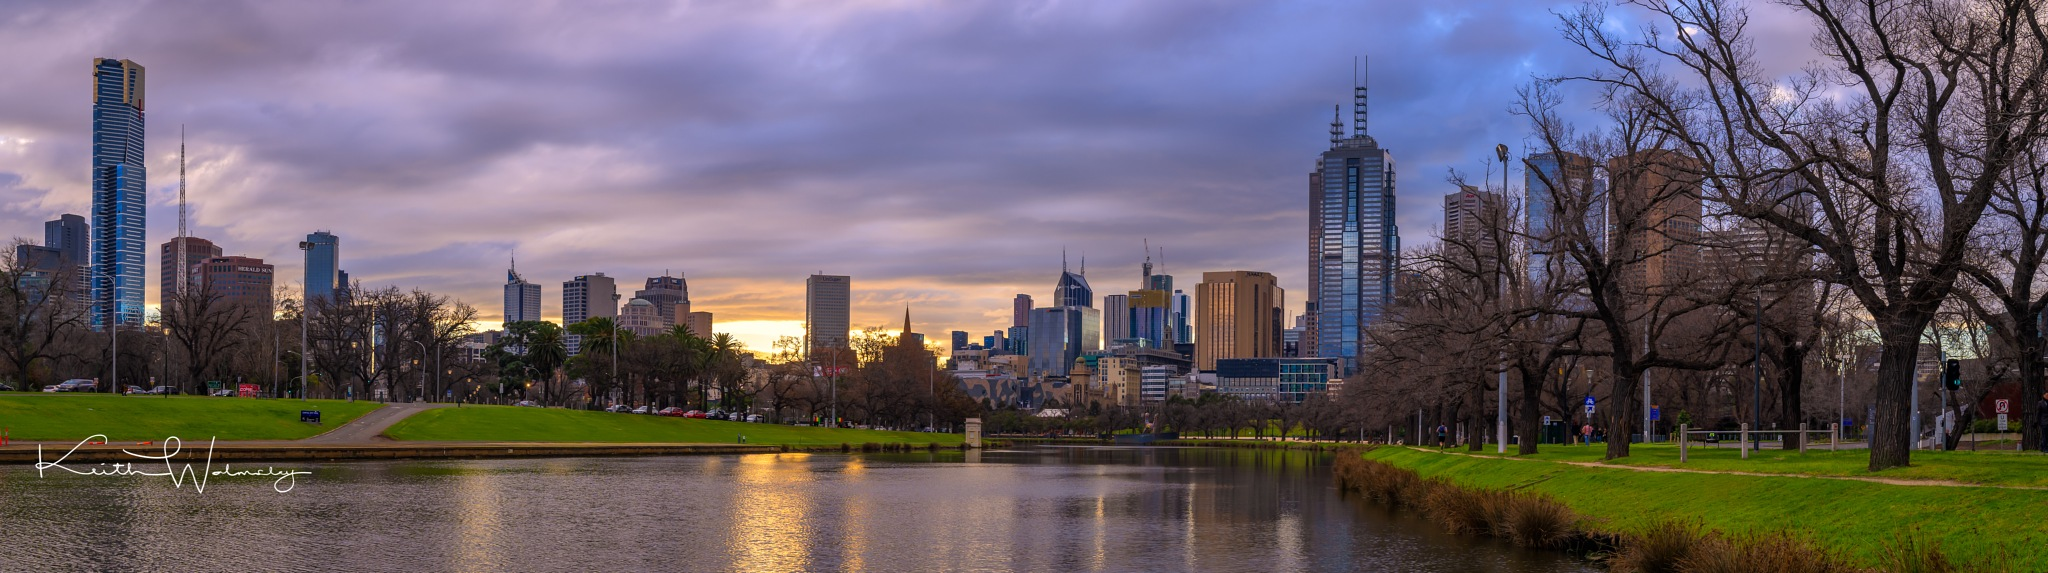 Panoramic Melbourne by keithhmw